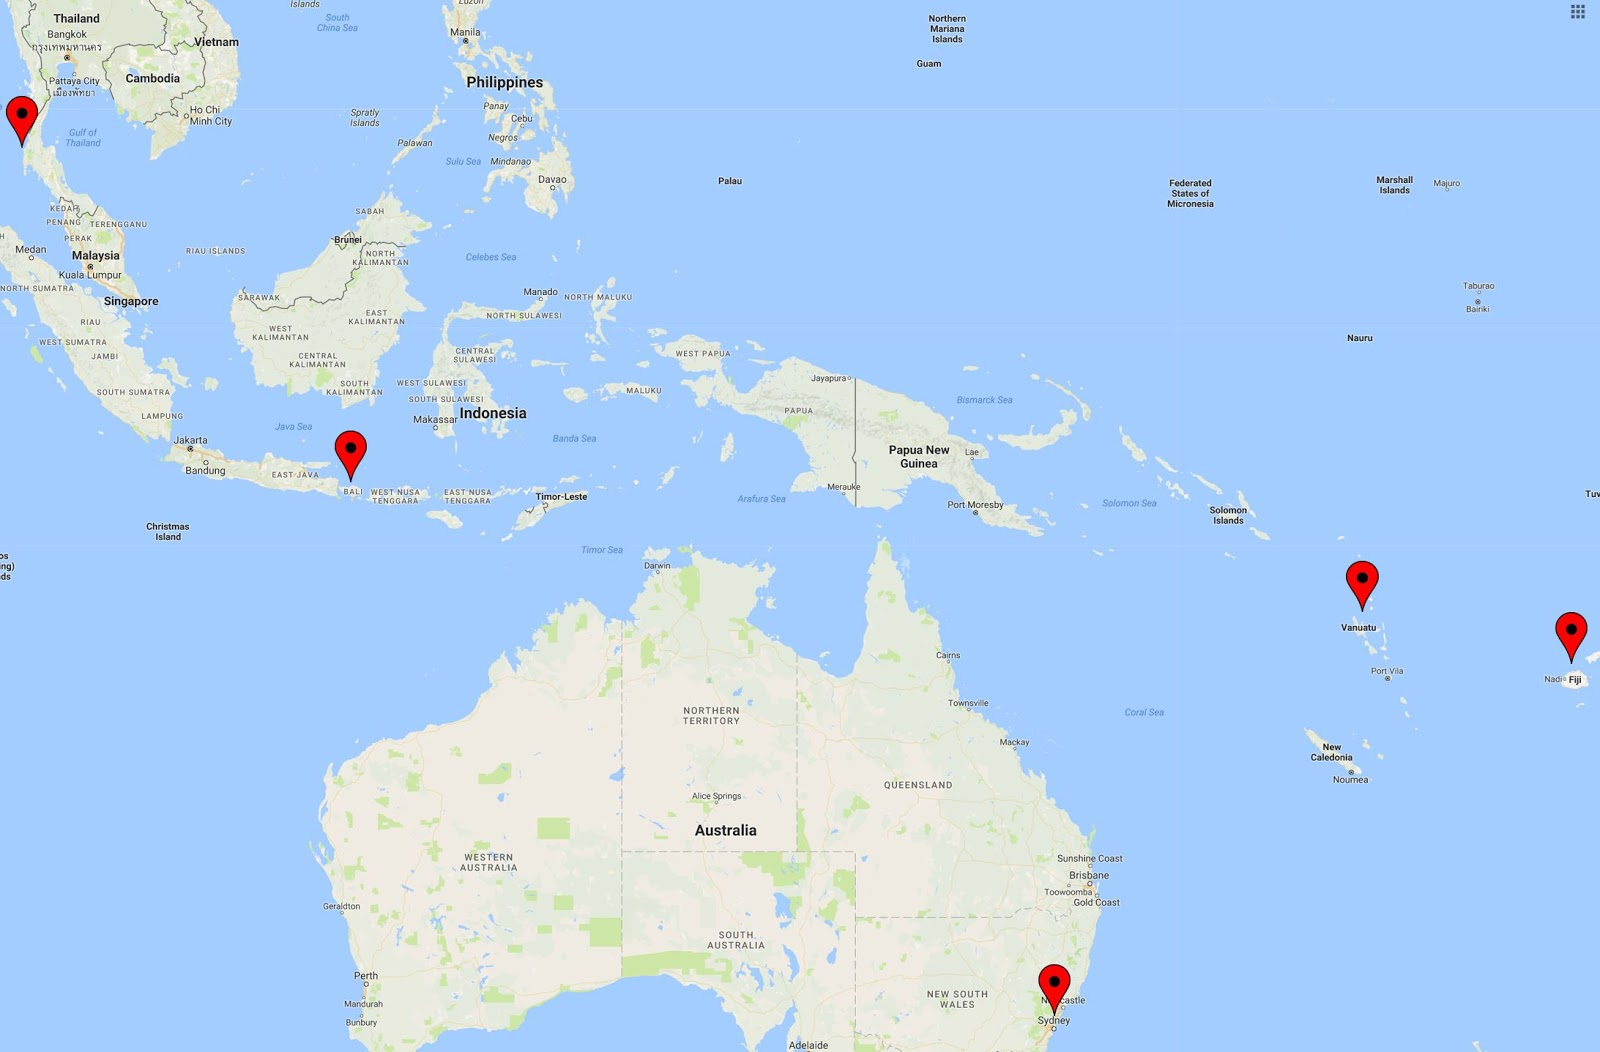 A few thoughts trip to australia phuket bali vanuatu and here is what the trip looks like on a map gumiabroncs Images